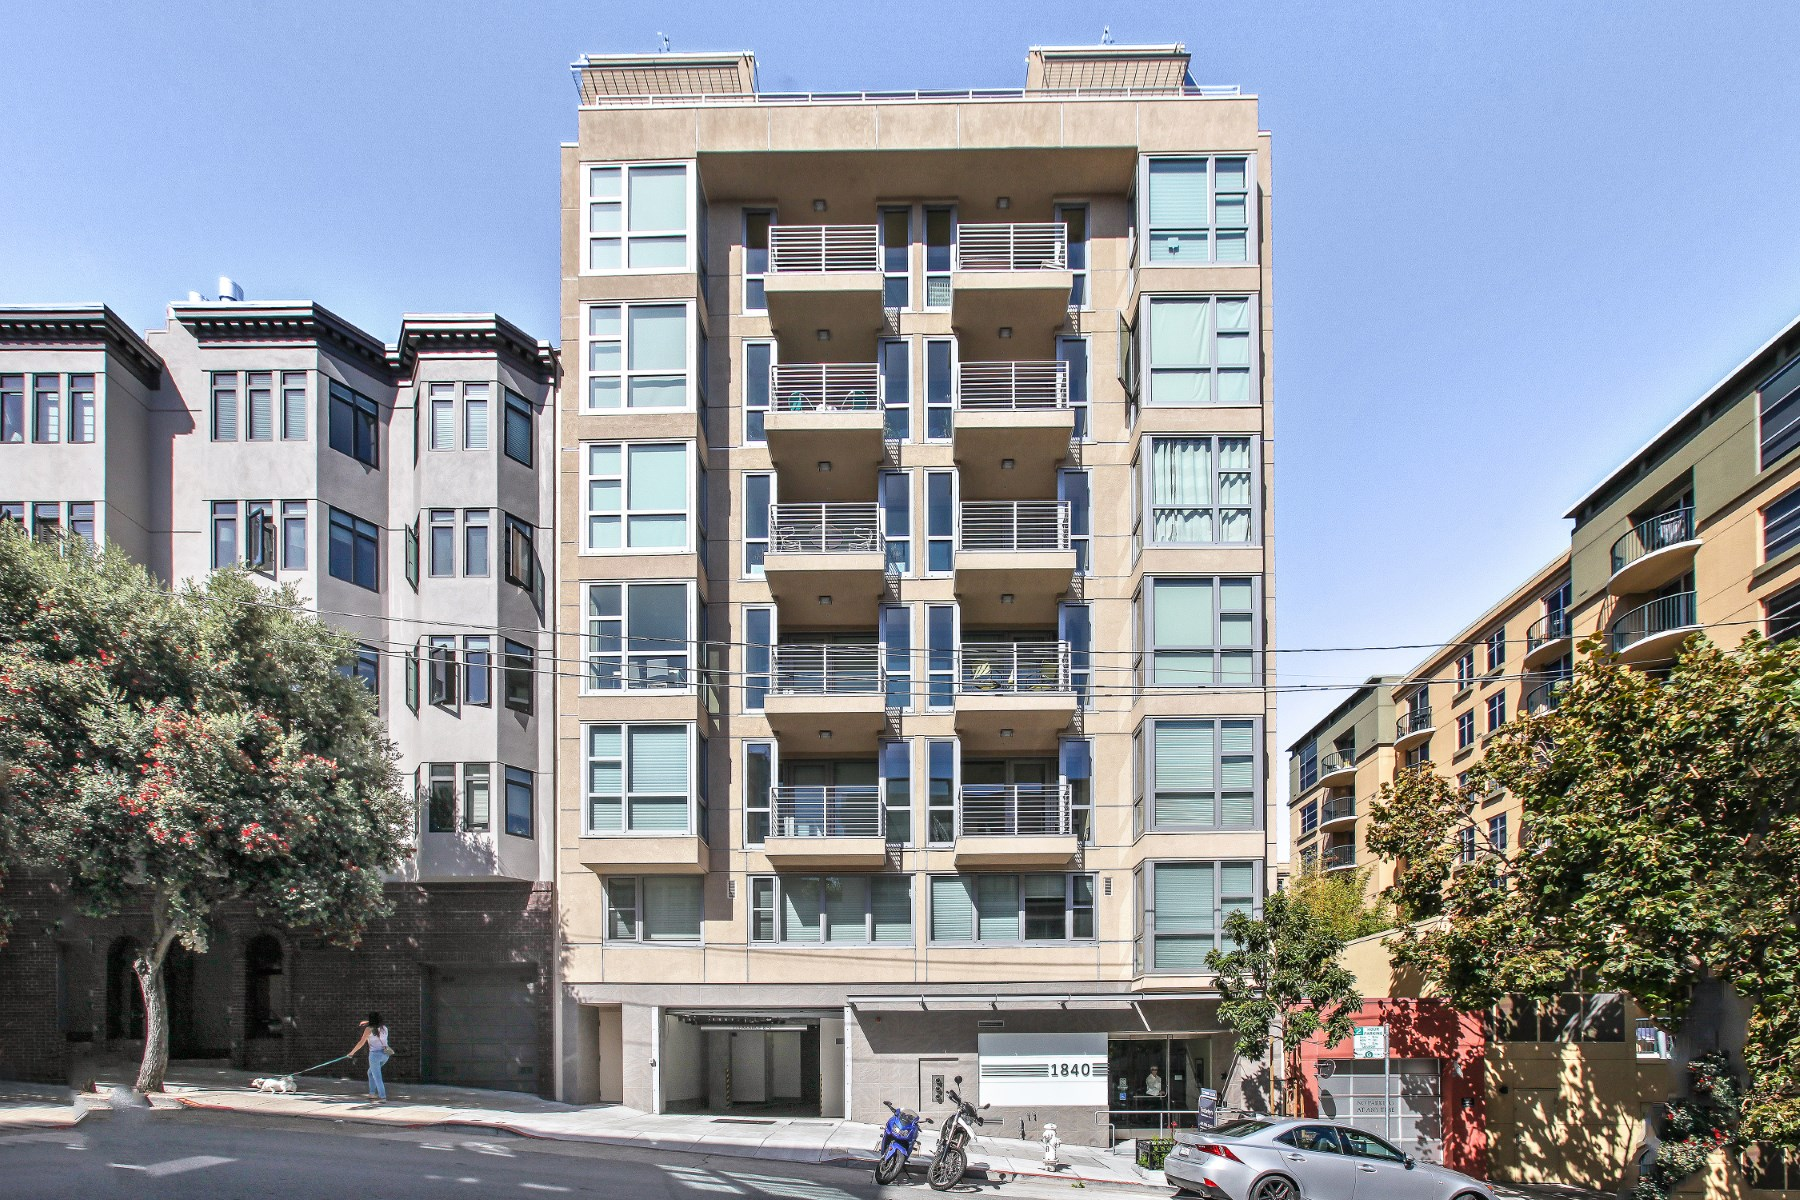 Condominium for Sale at Pacific Heights Luxury Condo 1840 Washington St Apt 203 Pacific Heights, San Francisco, California, 94109 United States